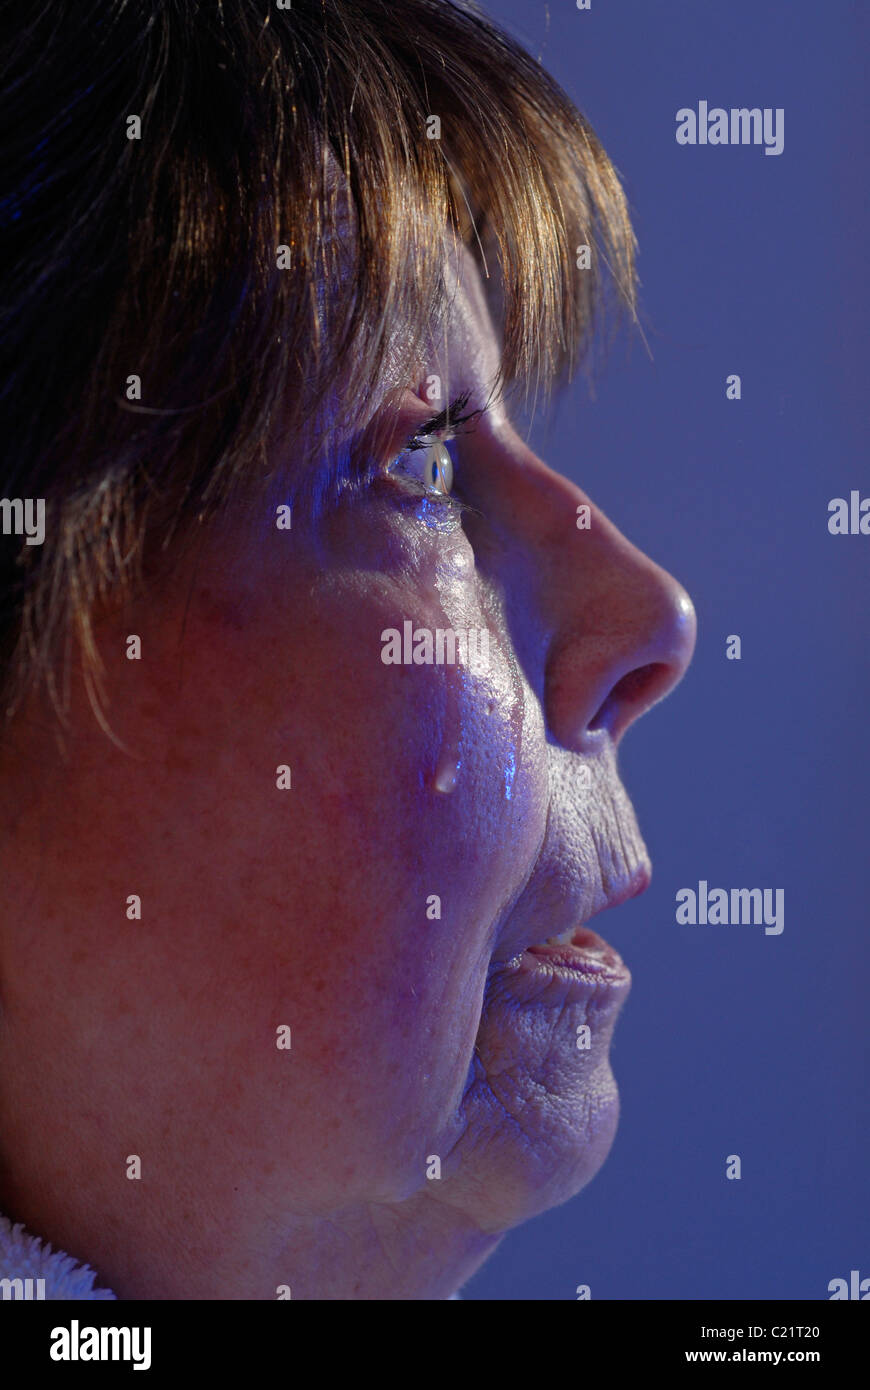 An elderly woman is crying. She is photographed in profile - Stock Image